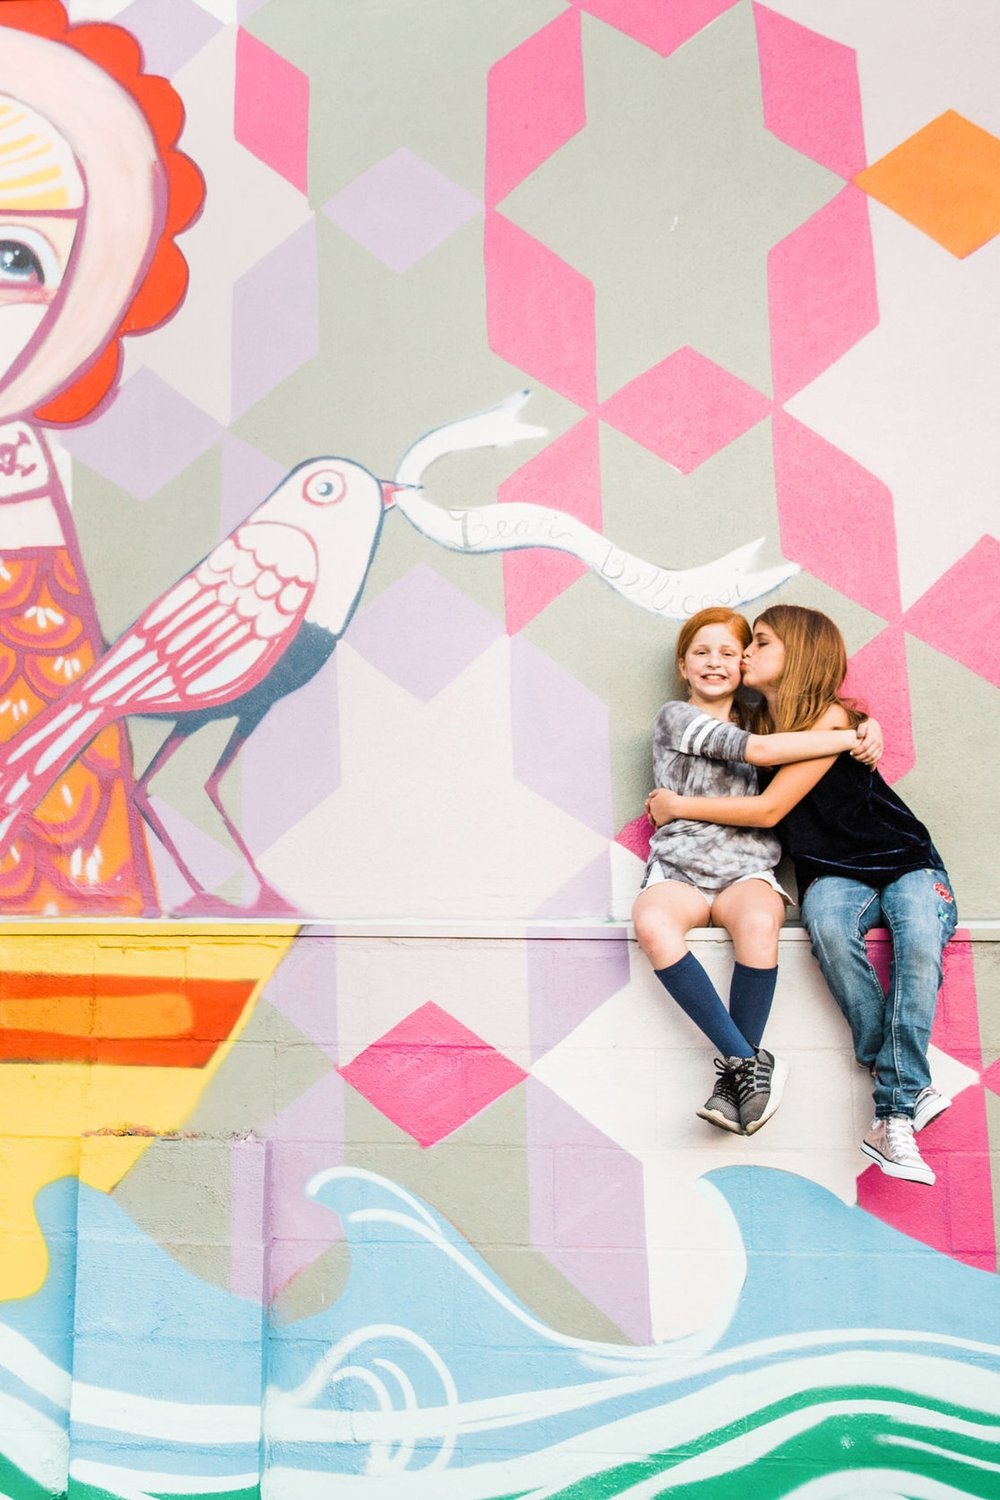 mural_kids_colorful.jpg